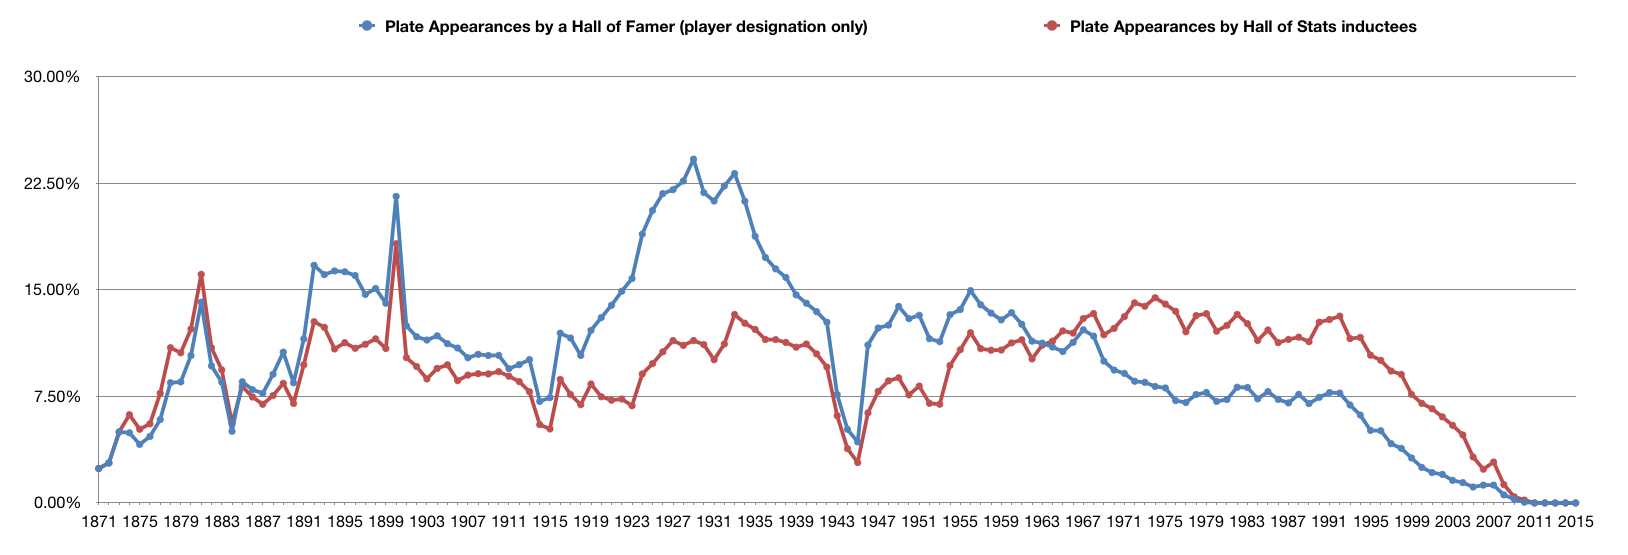 Percentage of Plate Appearances made by a Hall of Famer and a Hall of Stats member